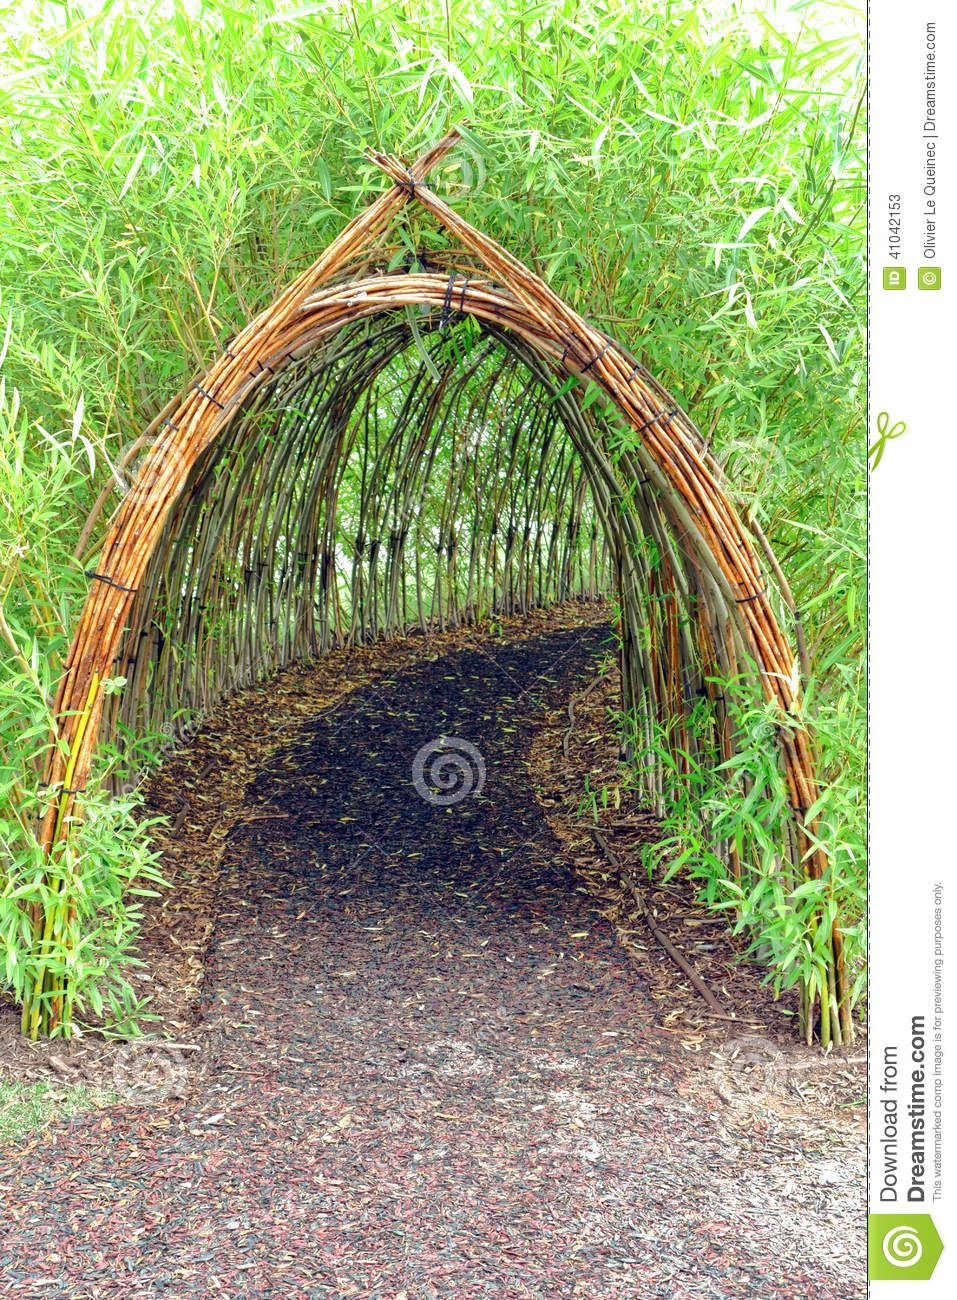 Whimsical And Magic Live Bamboo Plant Covered Tunnel As Secret